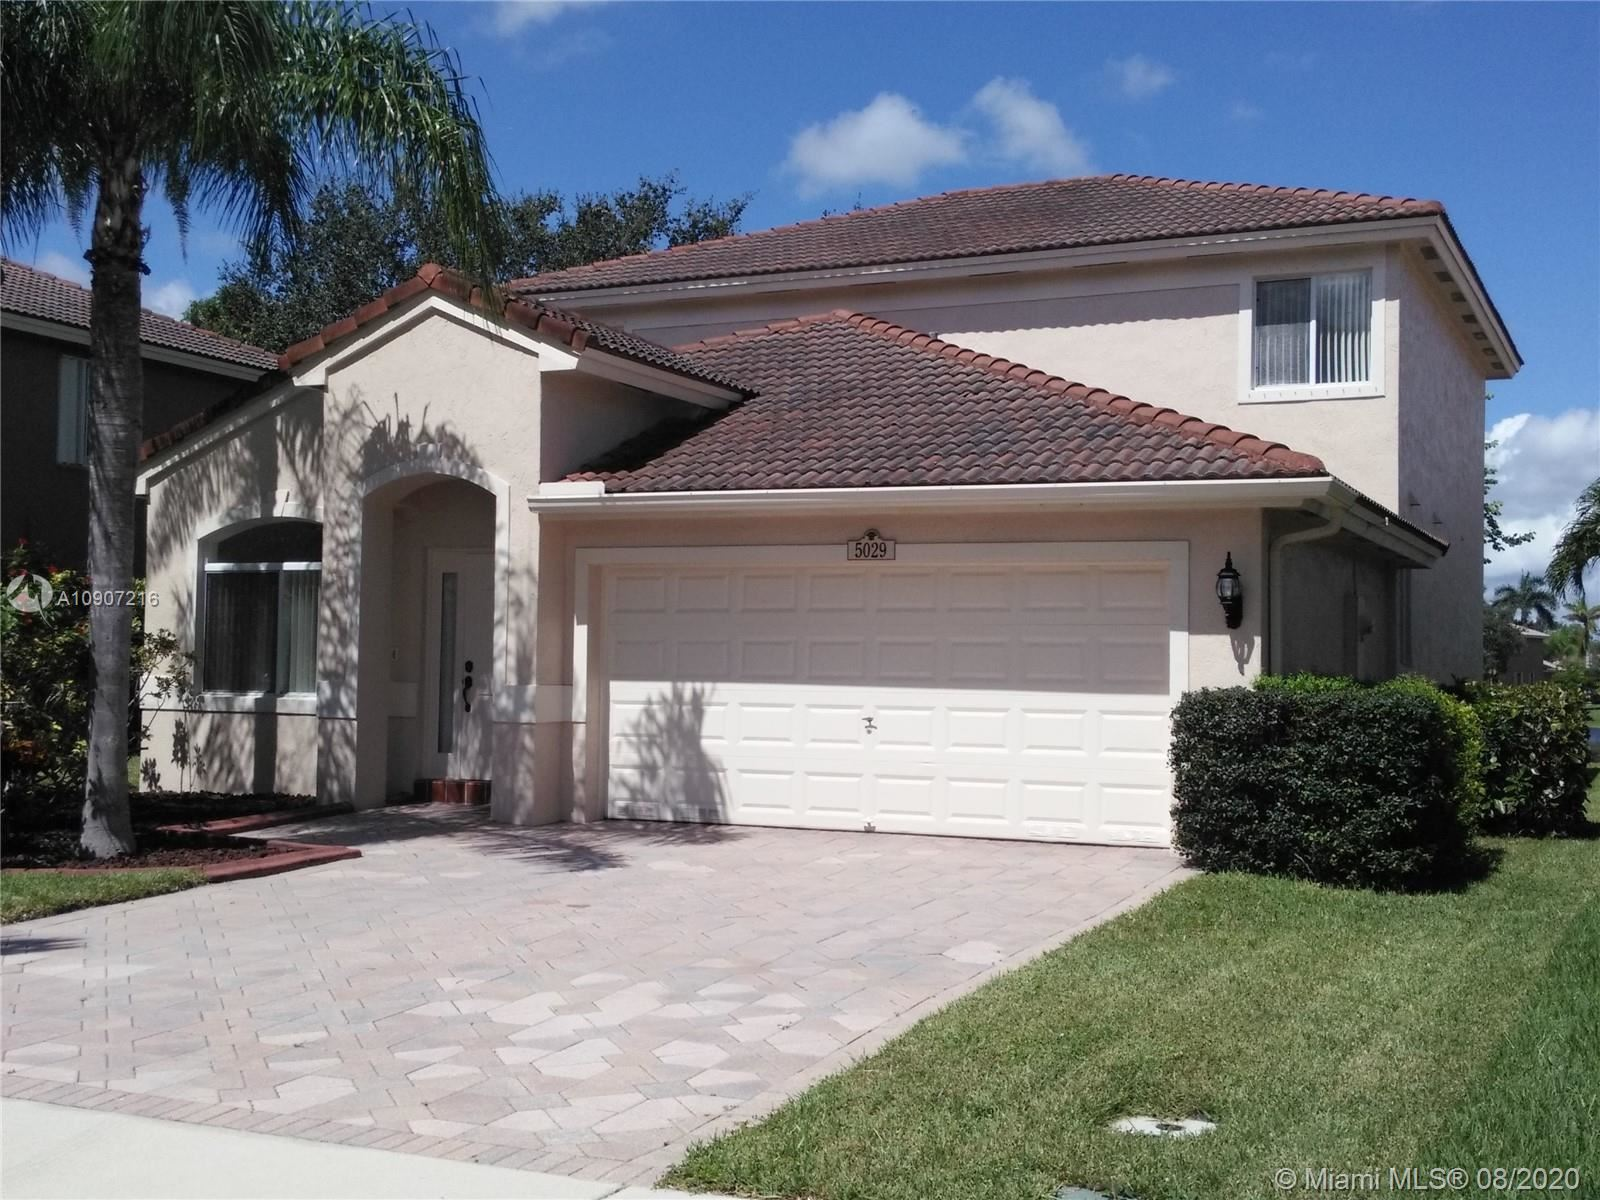 5029 Pebblebrook Ter, Coconut Creek, FL 33073 - #: A10907216